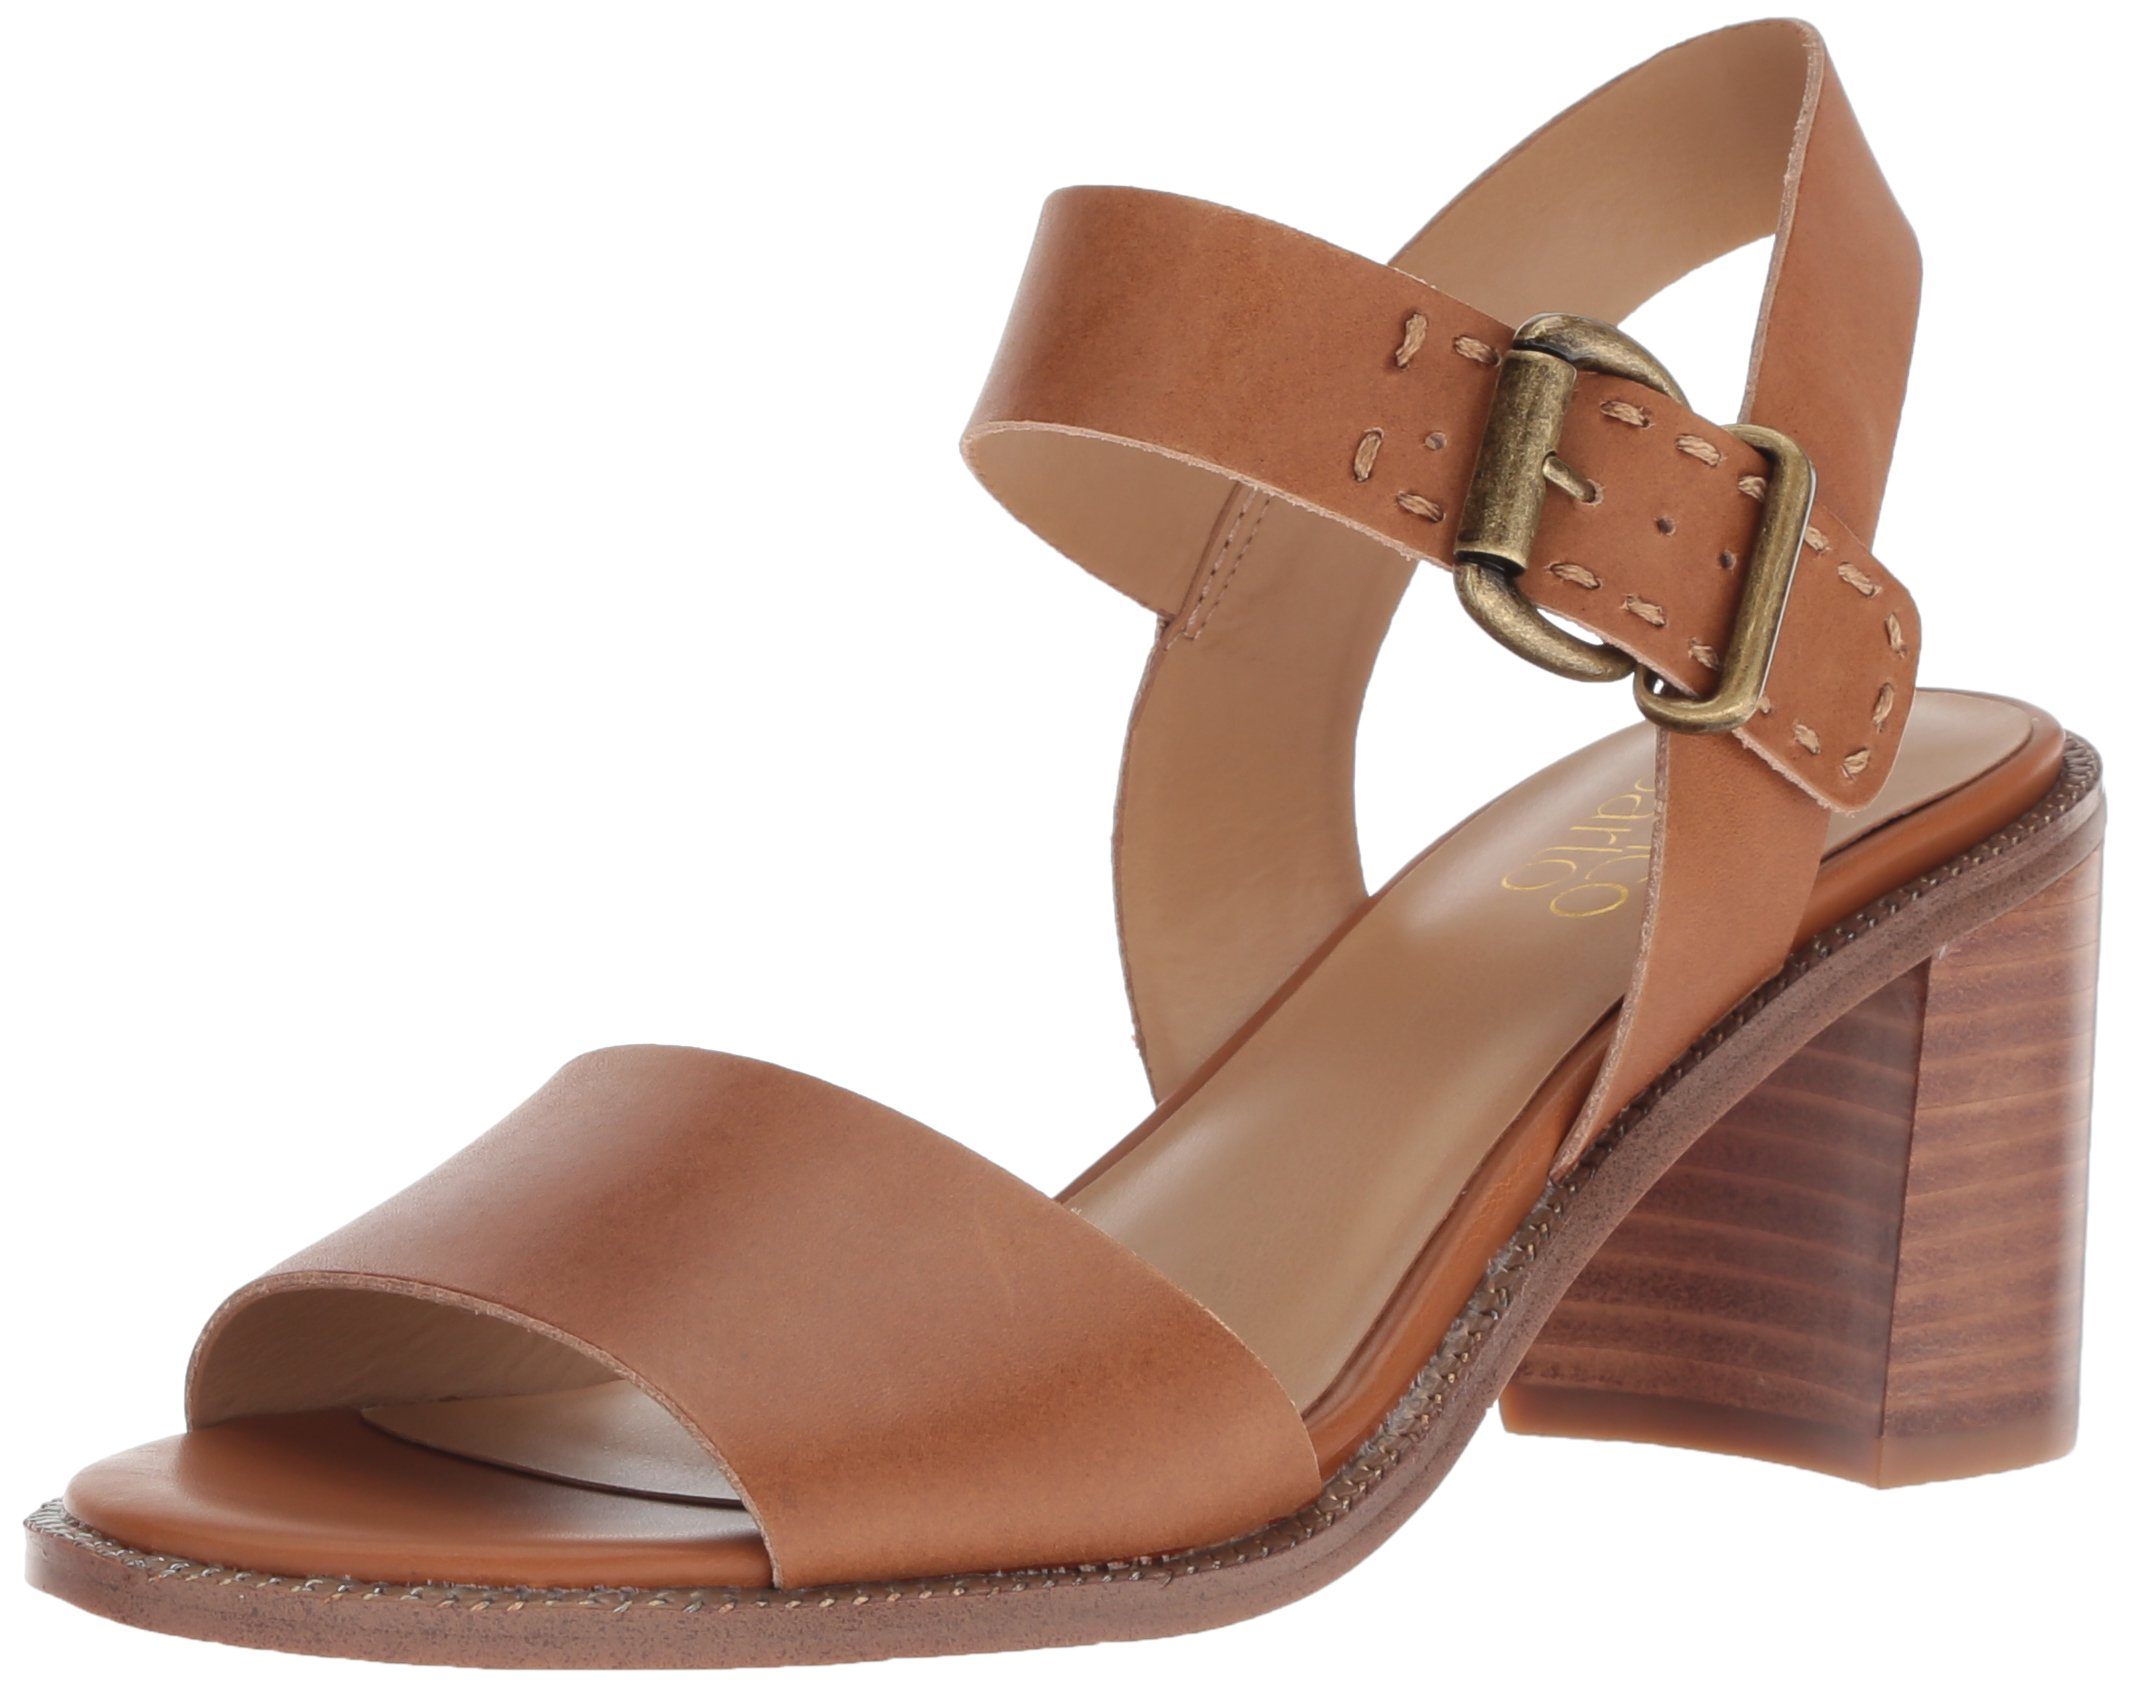 Franco Sarto Women's Havana Heeled Sandal, tan, 5 M US